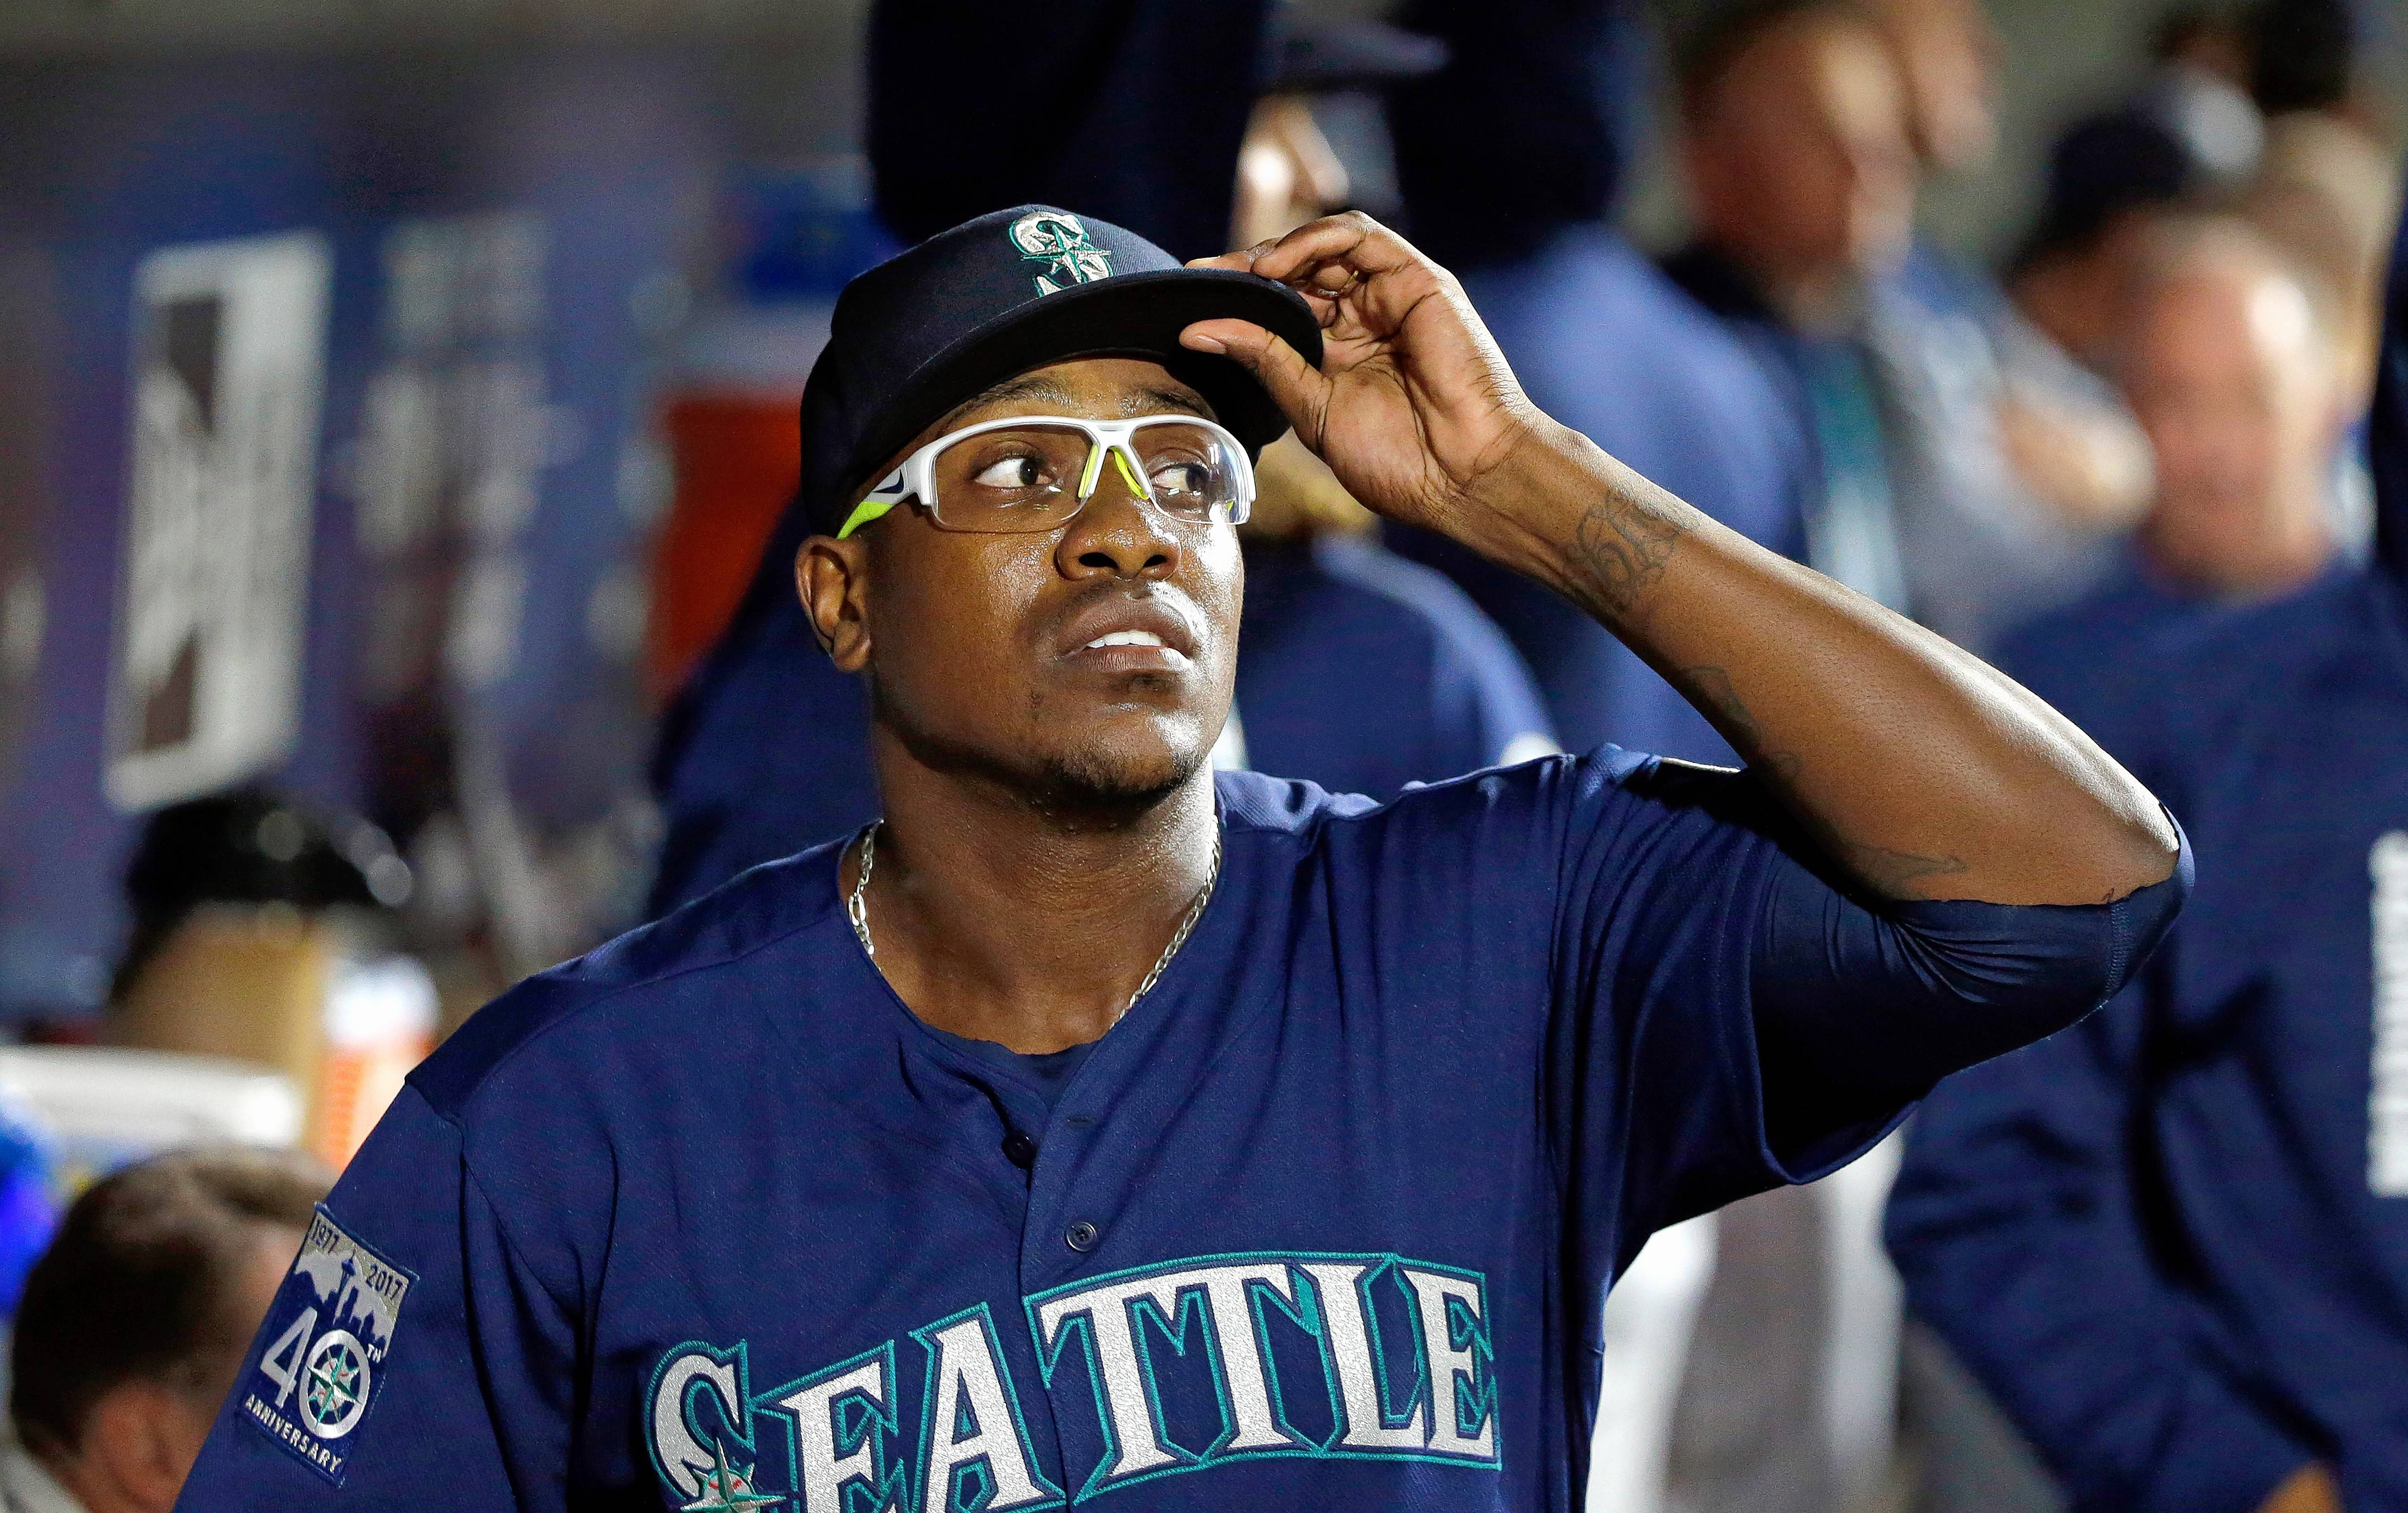 Seattle Mariners relief pitcher Thyago Vieira, a 24-year-old from Brazil, is now a member of the Chicago White Sox.